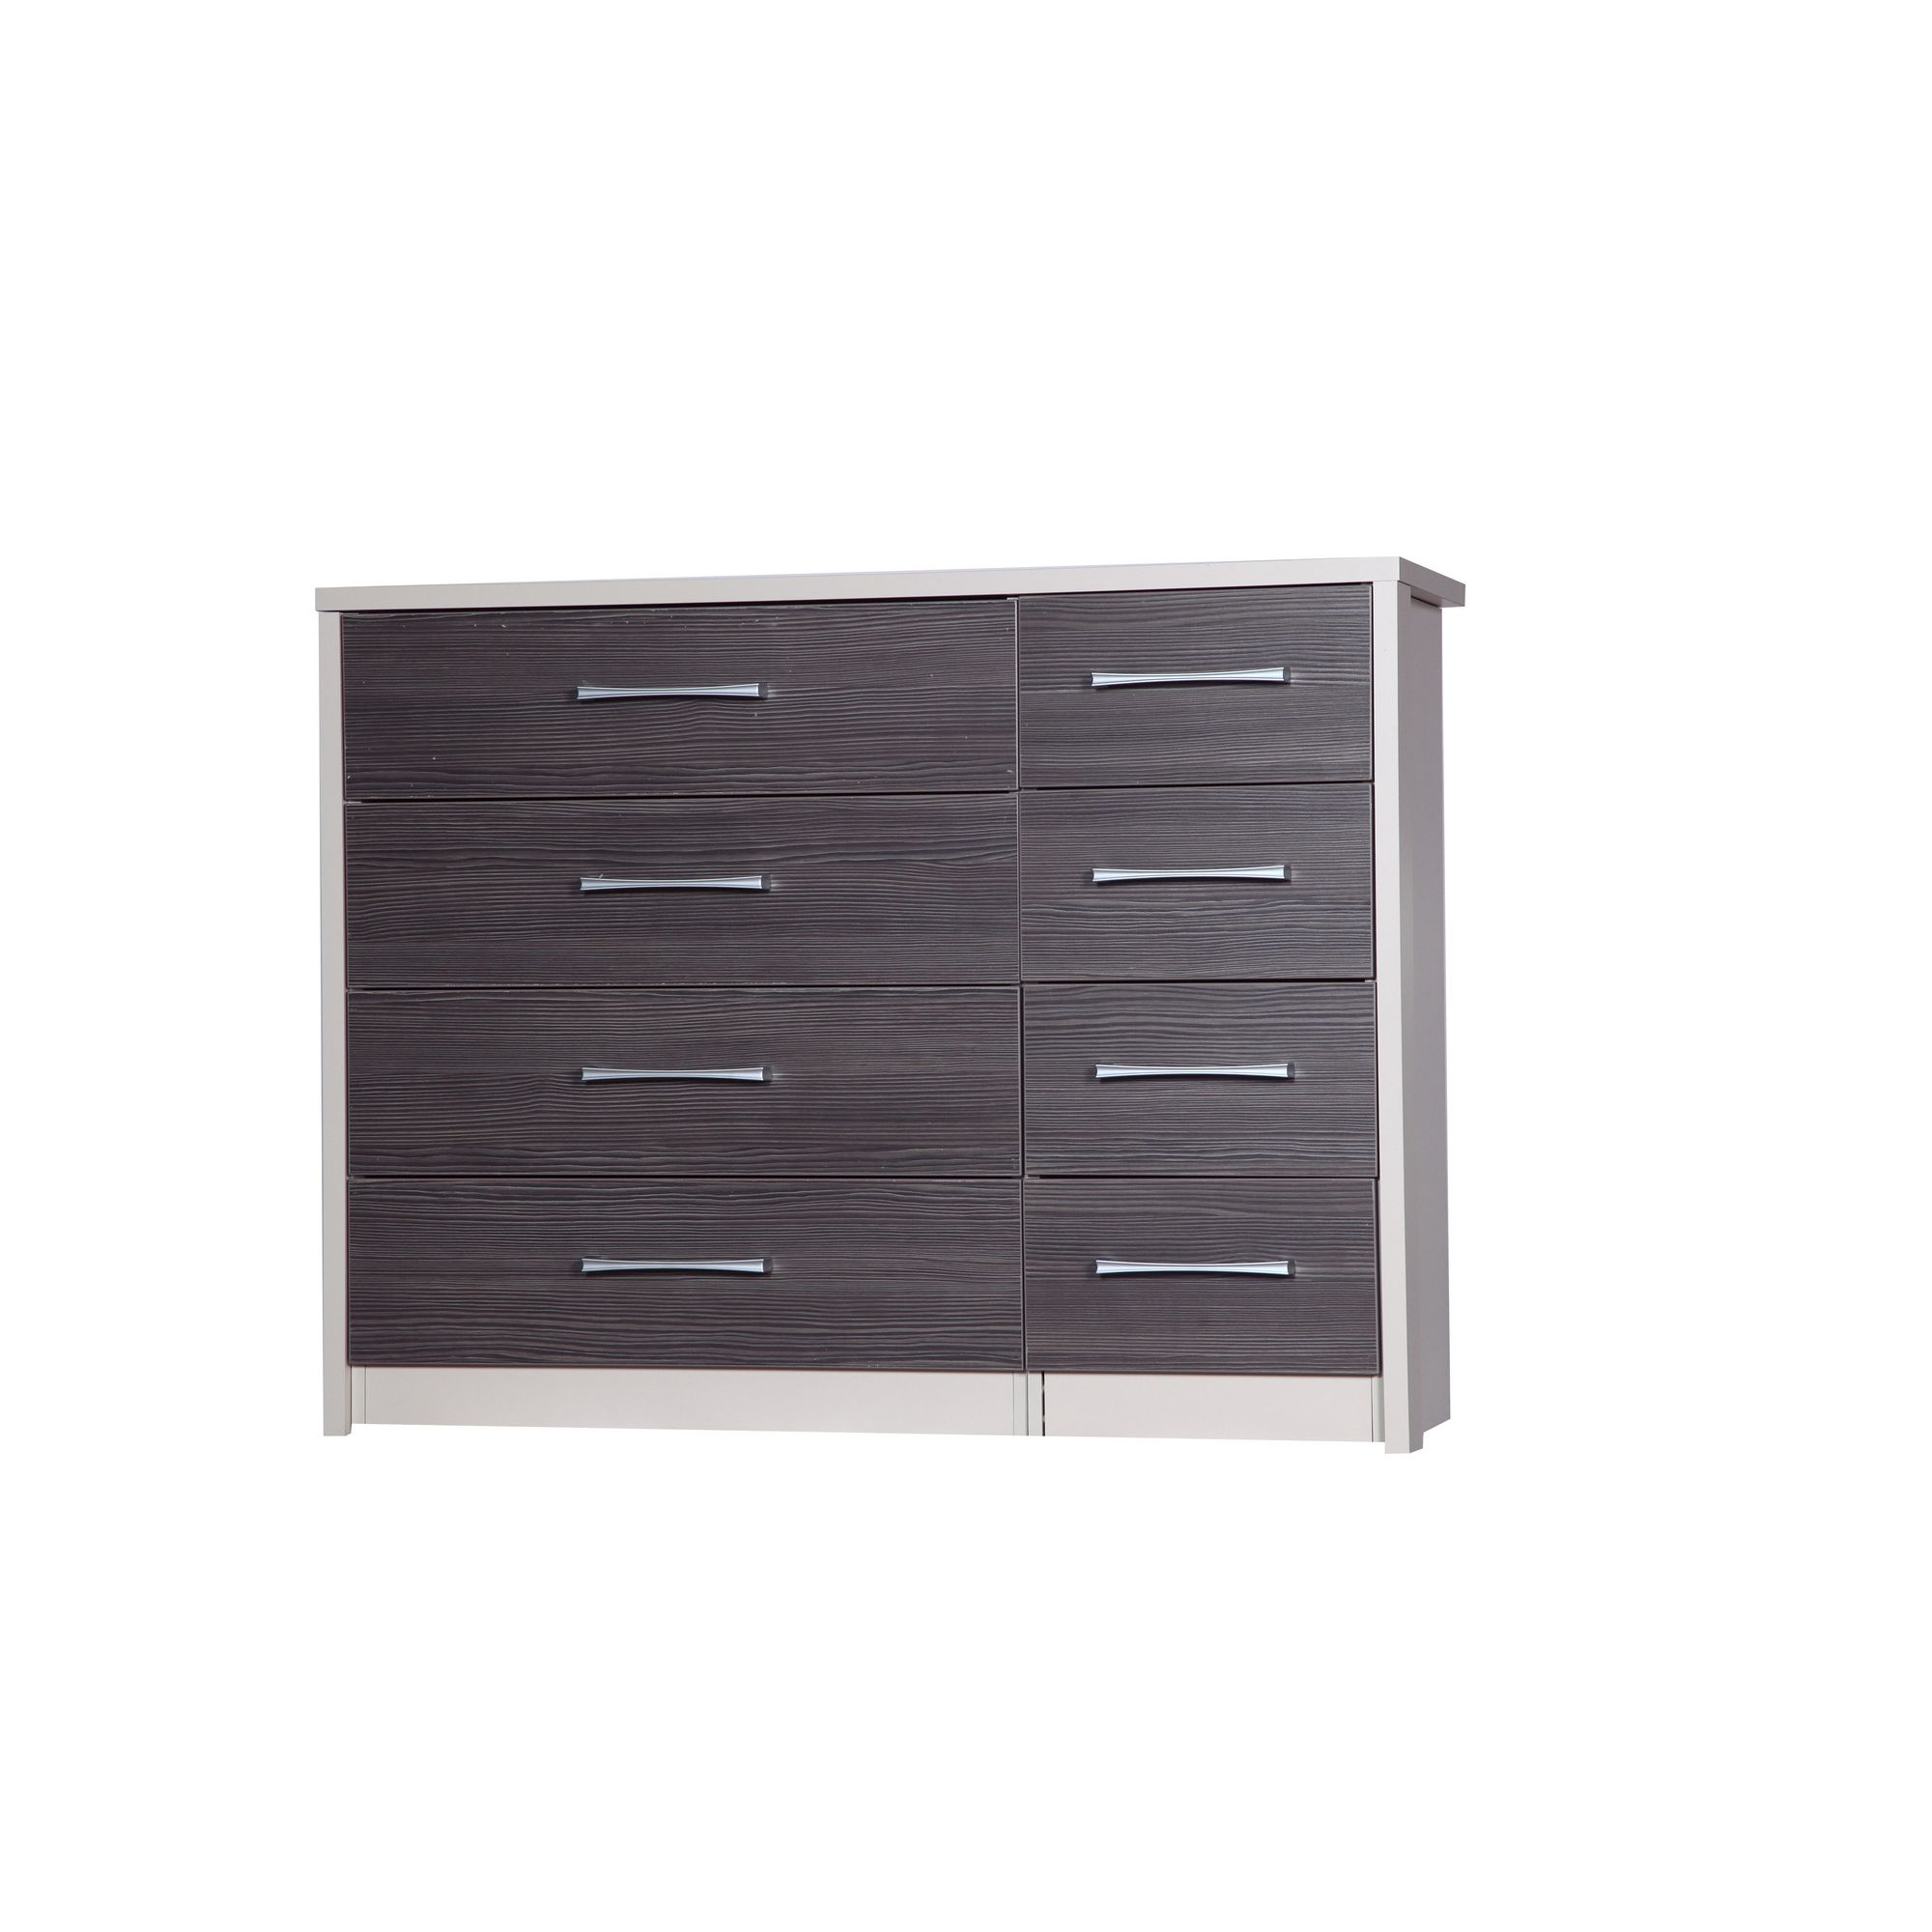 Alto Furniture Avola 8 Drawer Double Chest - Cream Carcass With Grey Avola at Tescos Direct